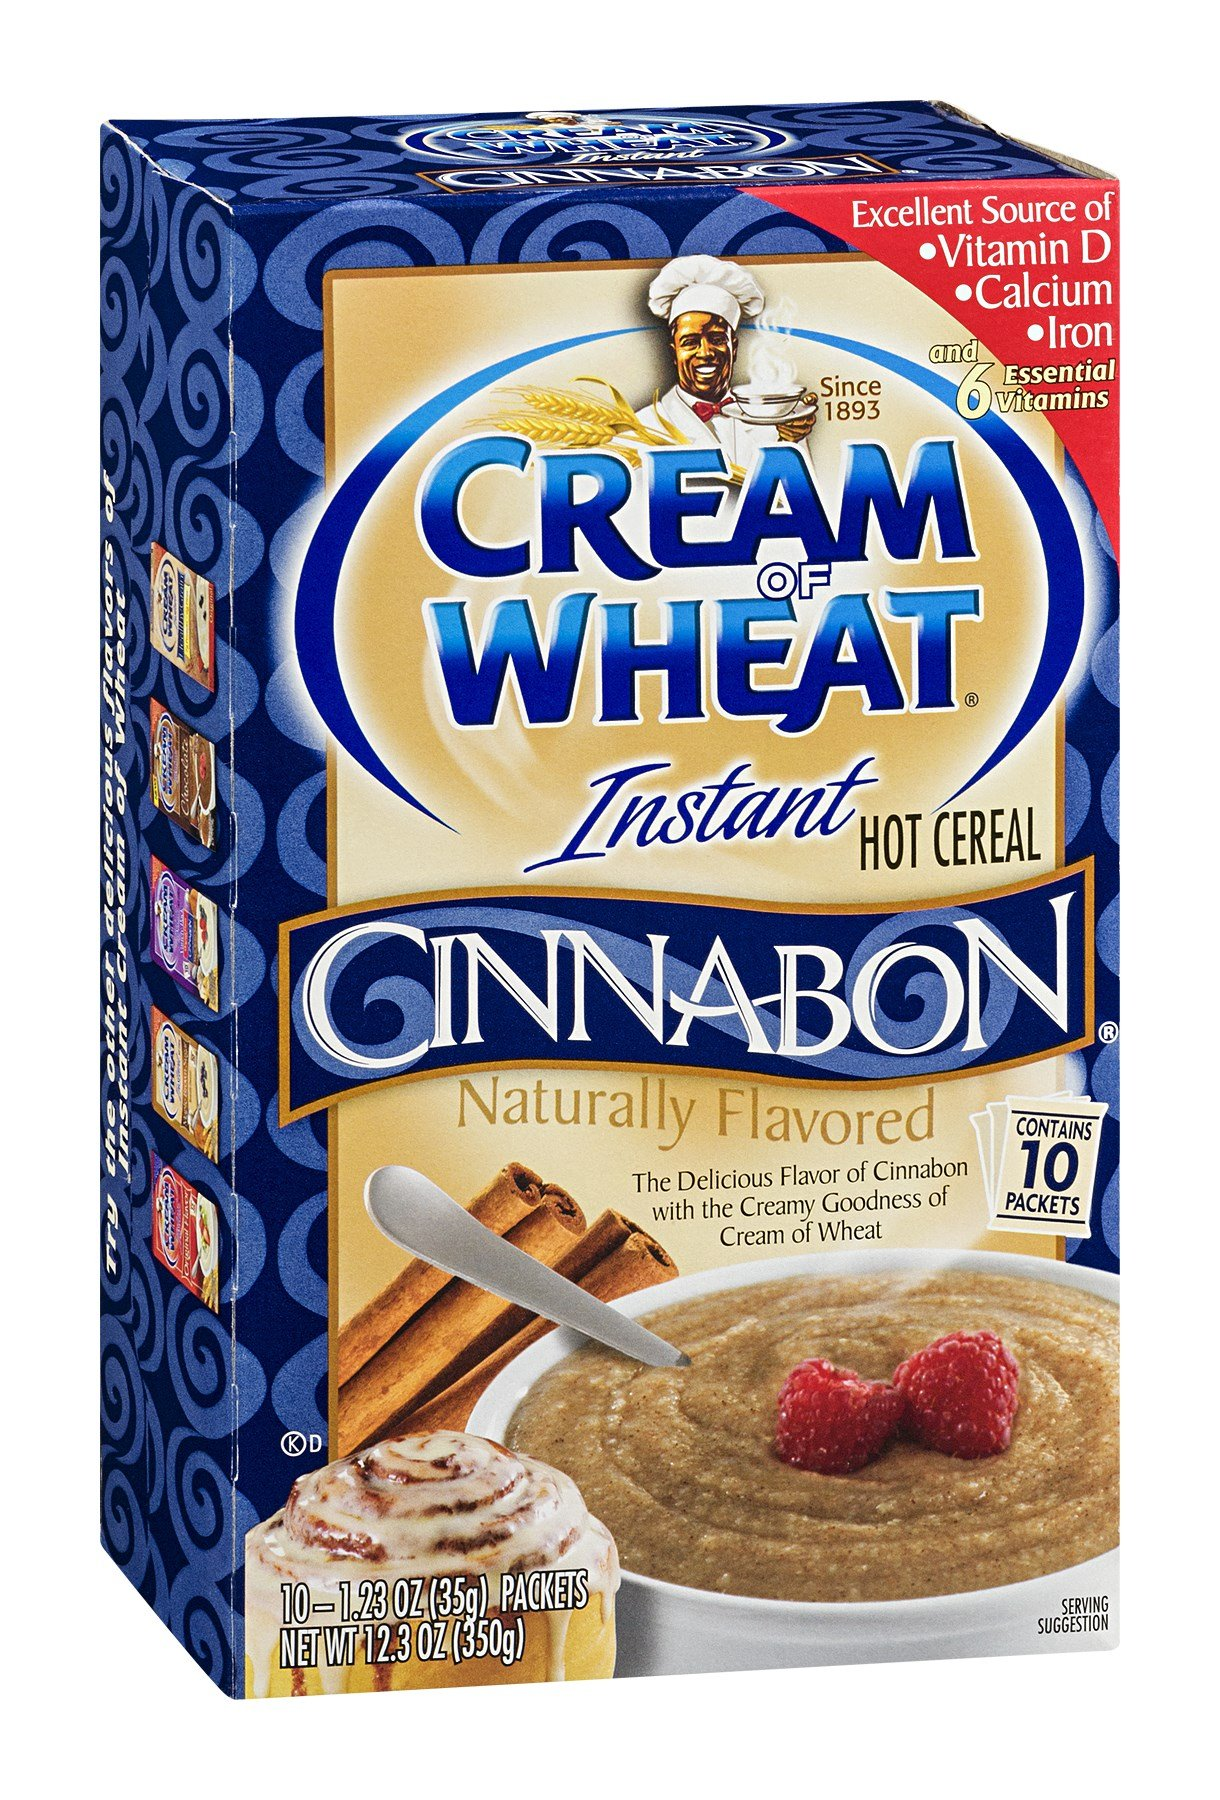 Cream of Wheat Instant Hot Cereal Cinnabon 12.5OZ (Pack of 24) by Cream of Wheat (Image #1)